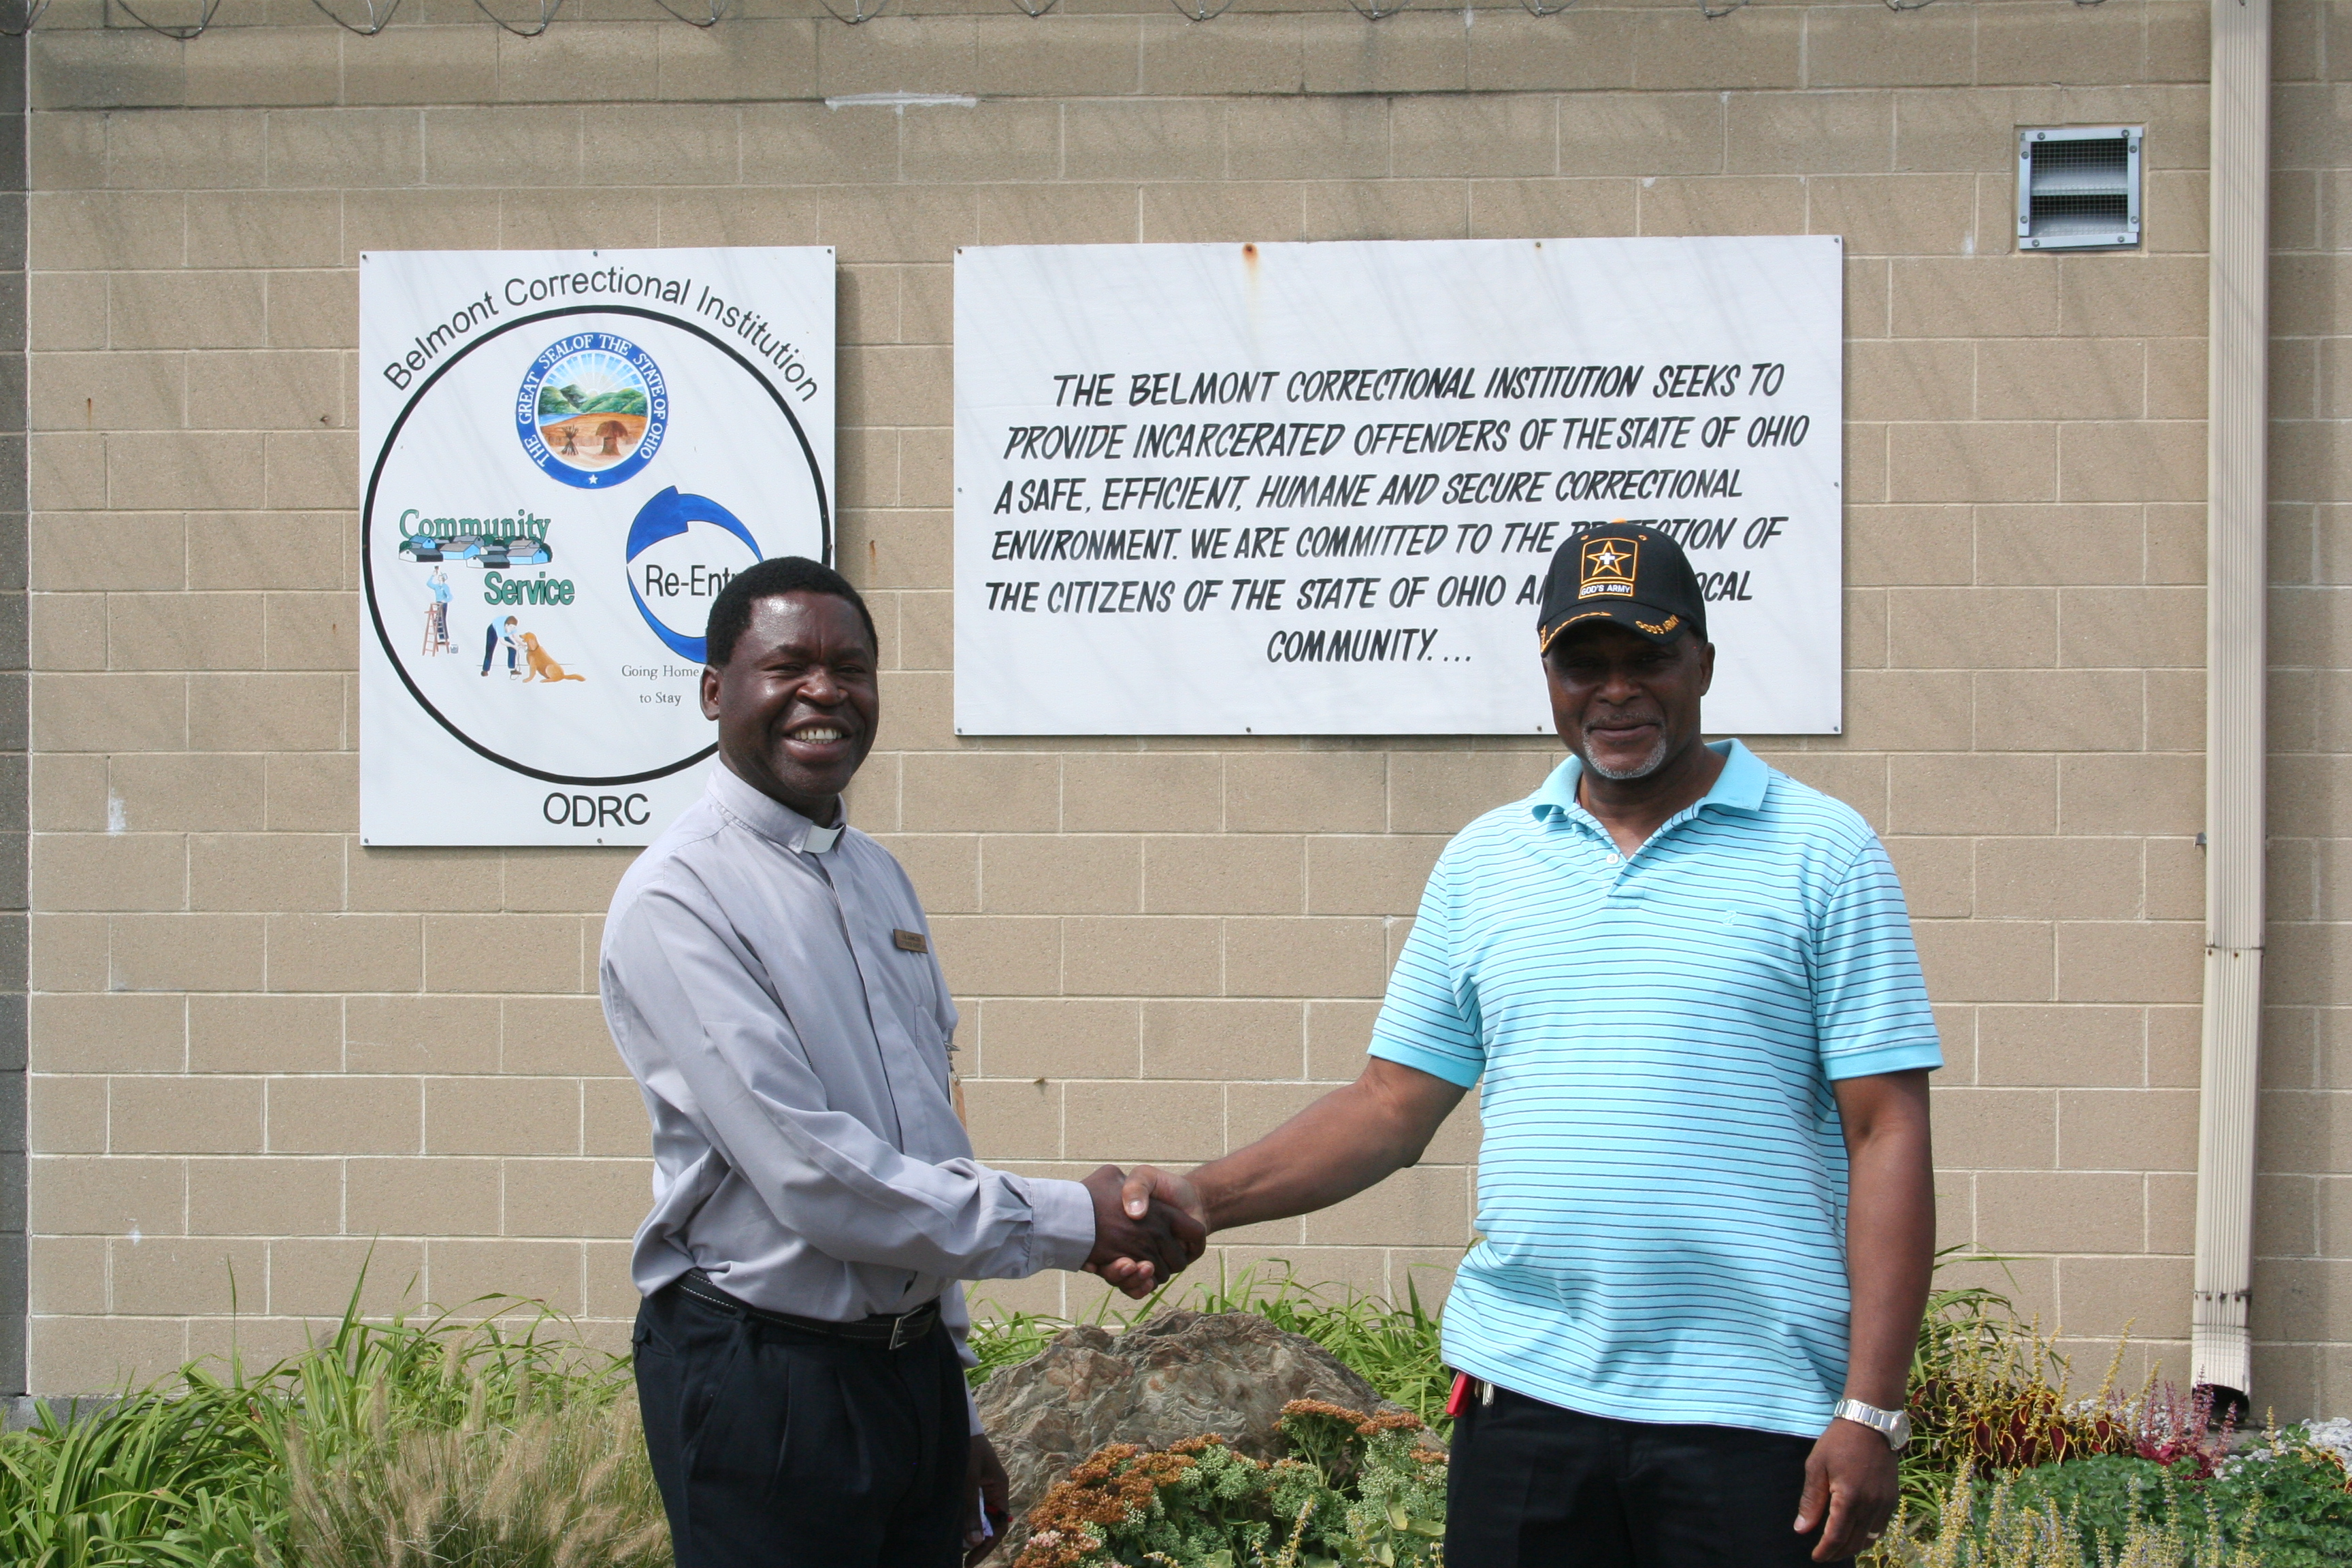 South African Chaplain Visits Belmont Correctional Institution (BeCI)